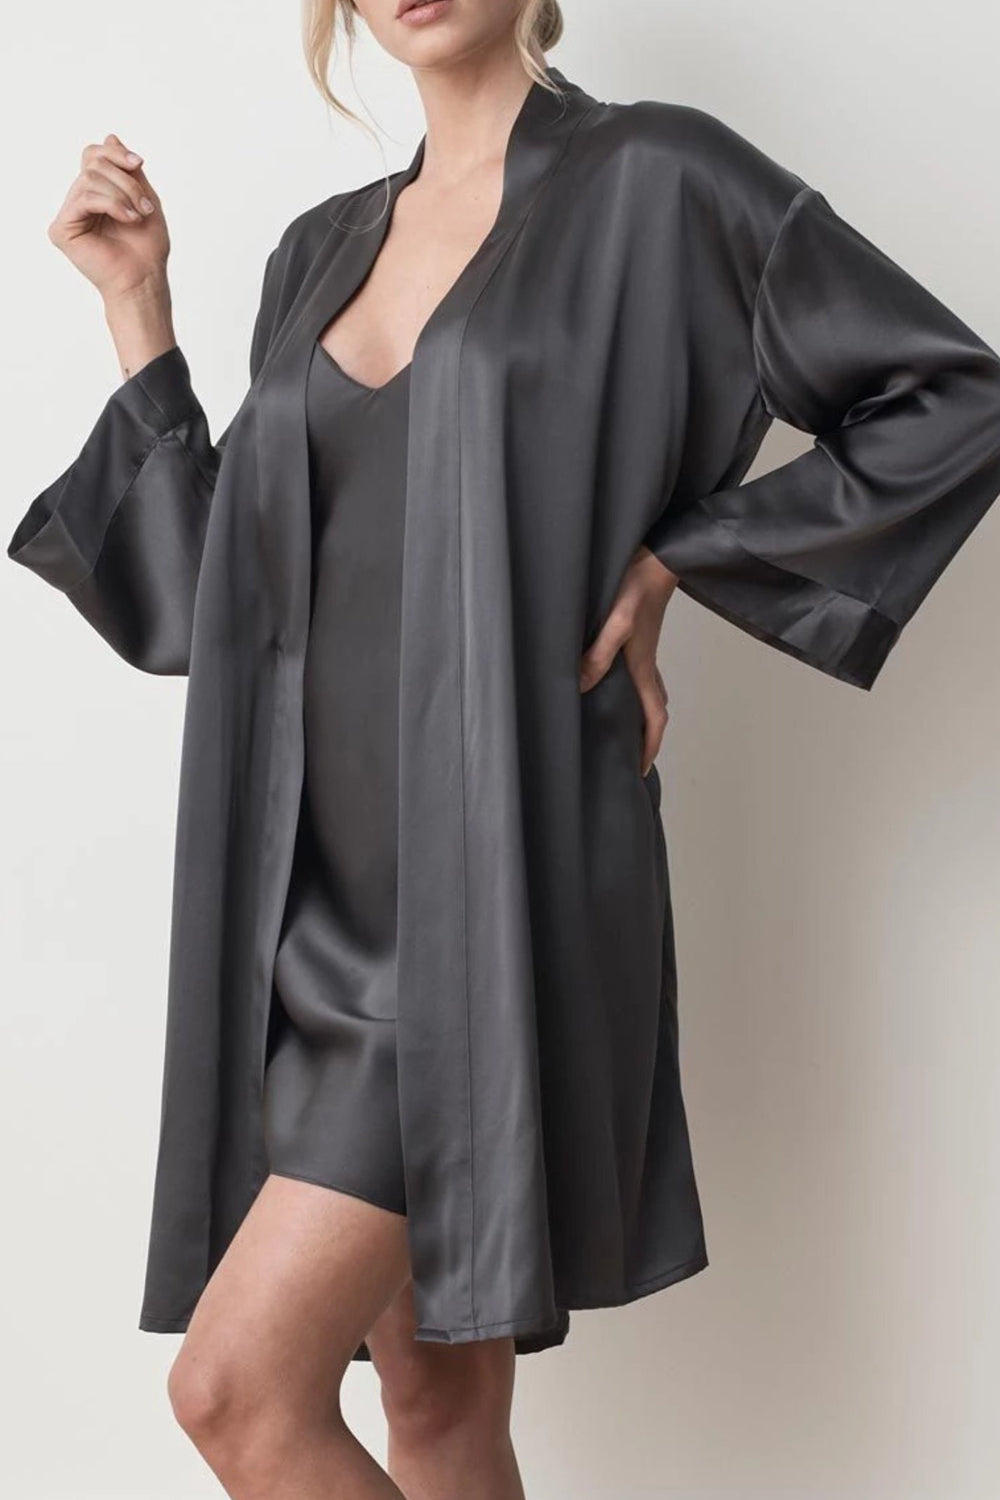 MS KENSINGTON - Silk Robe - Charcoal - Australian Fashion and Accessories Boutique - Faid Store